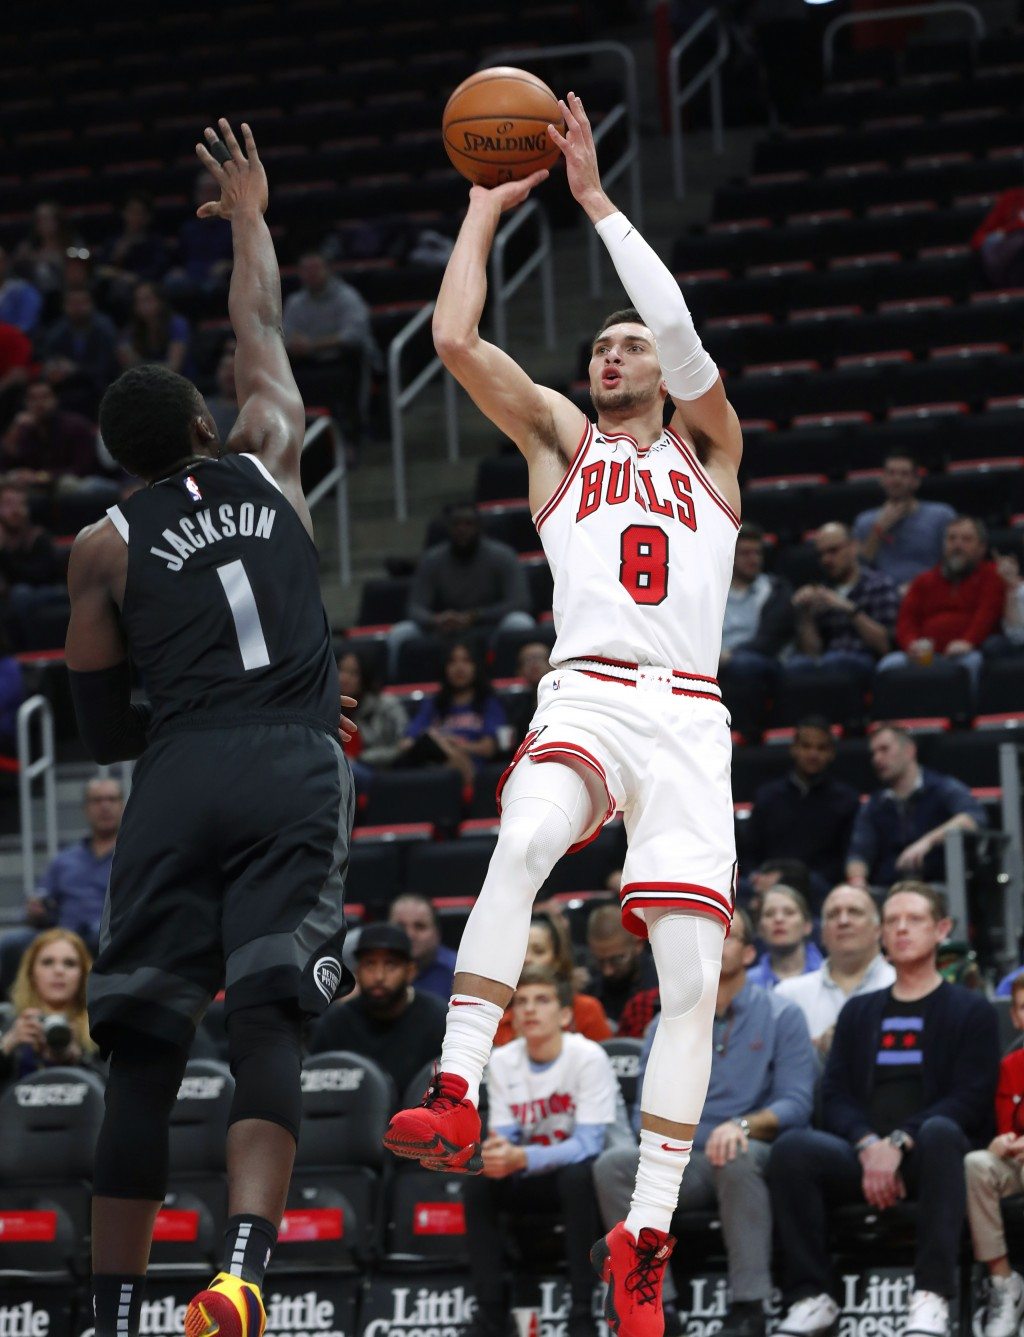 Chicago Bulls guard Zach LaVine (8) shoots as Detroit Pistons guard Reggie Jackson (1) defends during the first half of an NBA basketball game in Detr